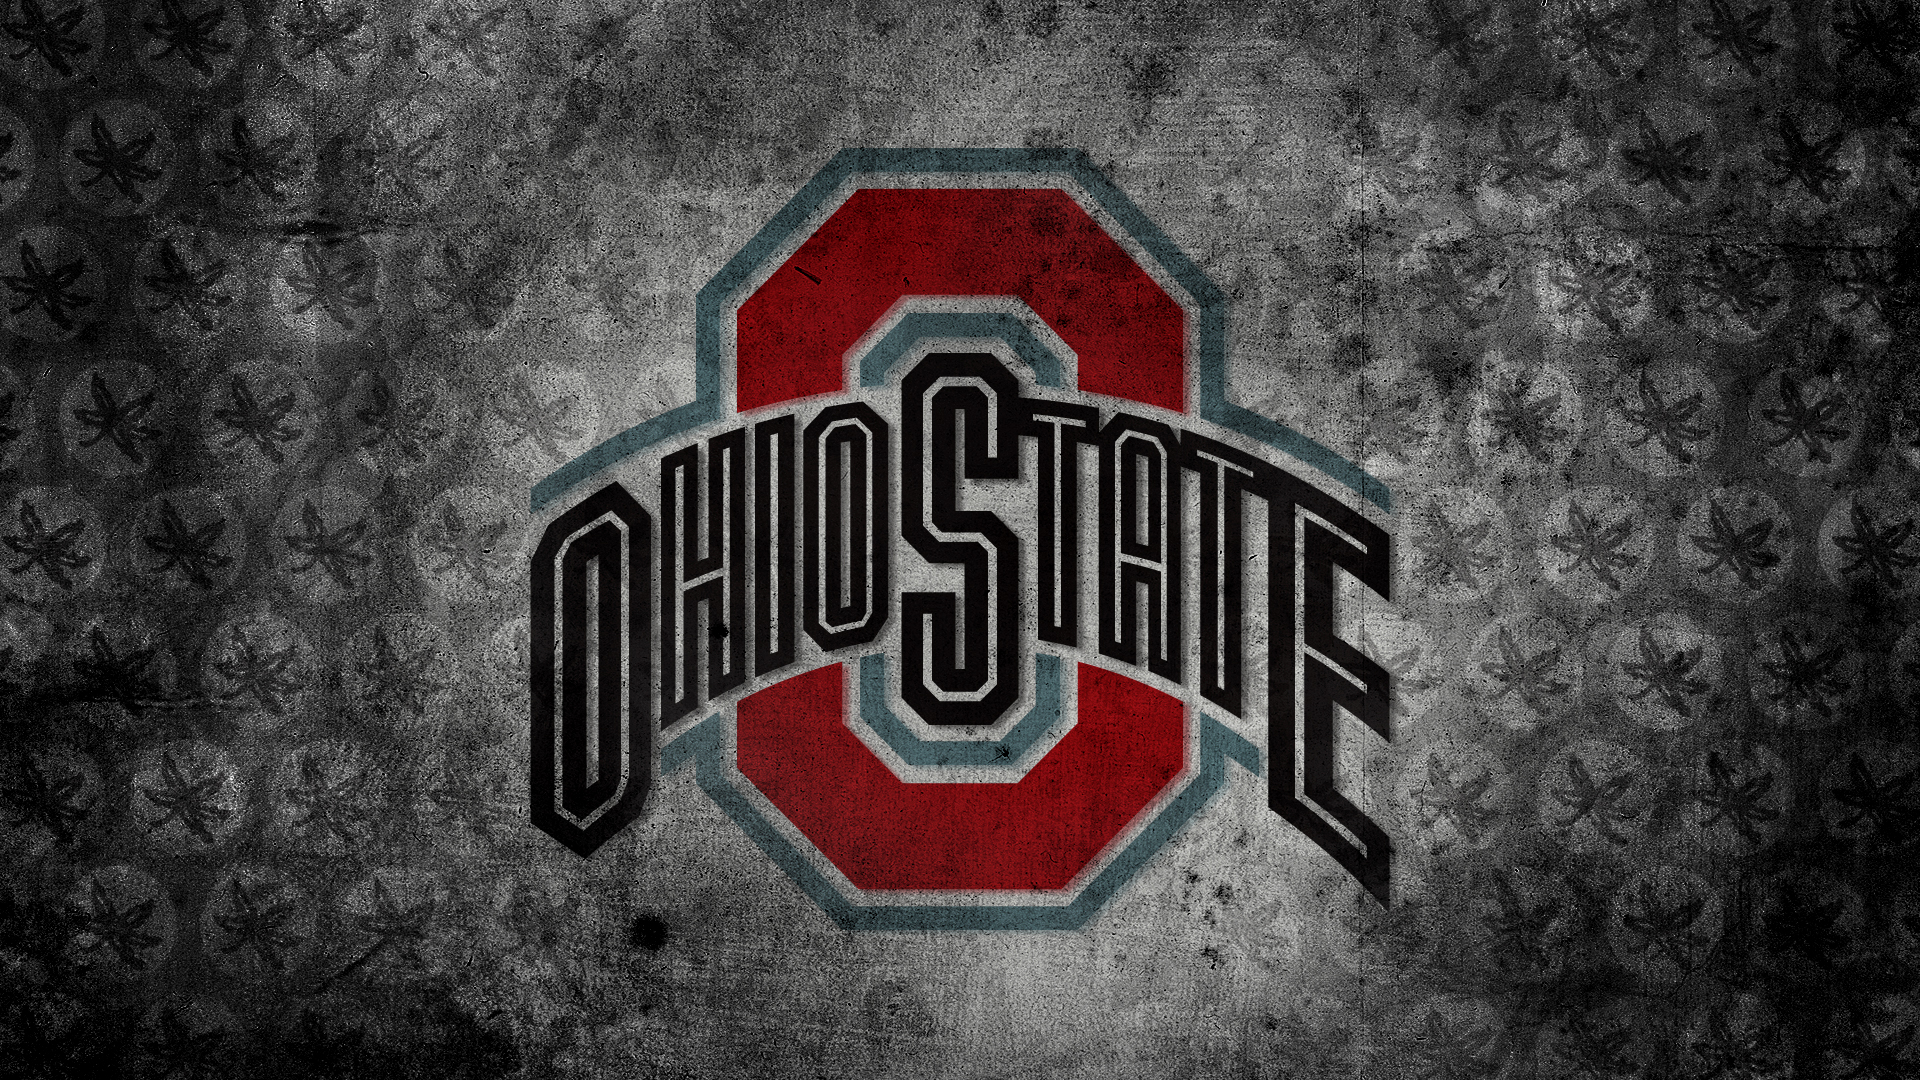 Ohio State Buckeyes Wallpaper #1 | Ohio State Buckeyes ...